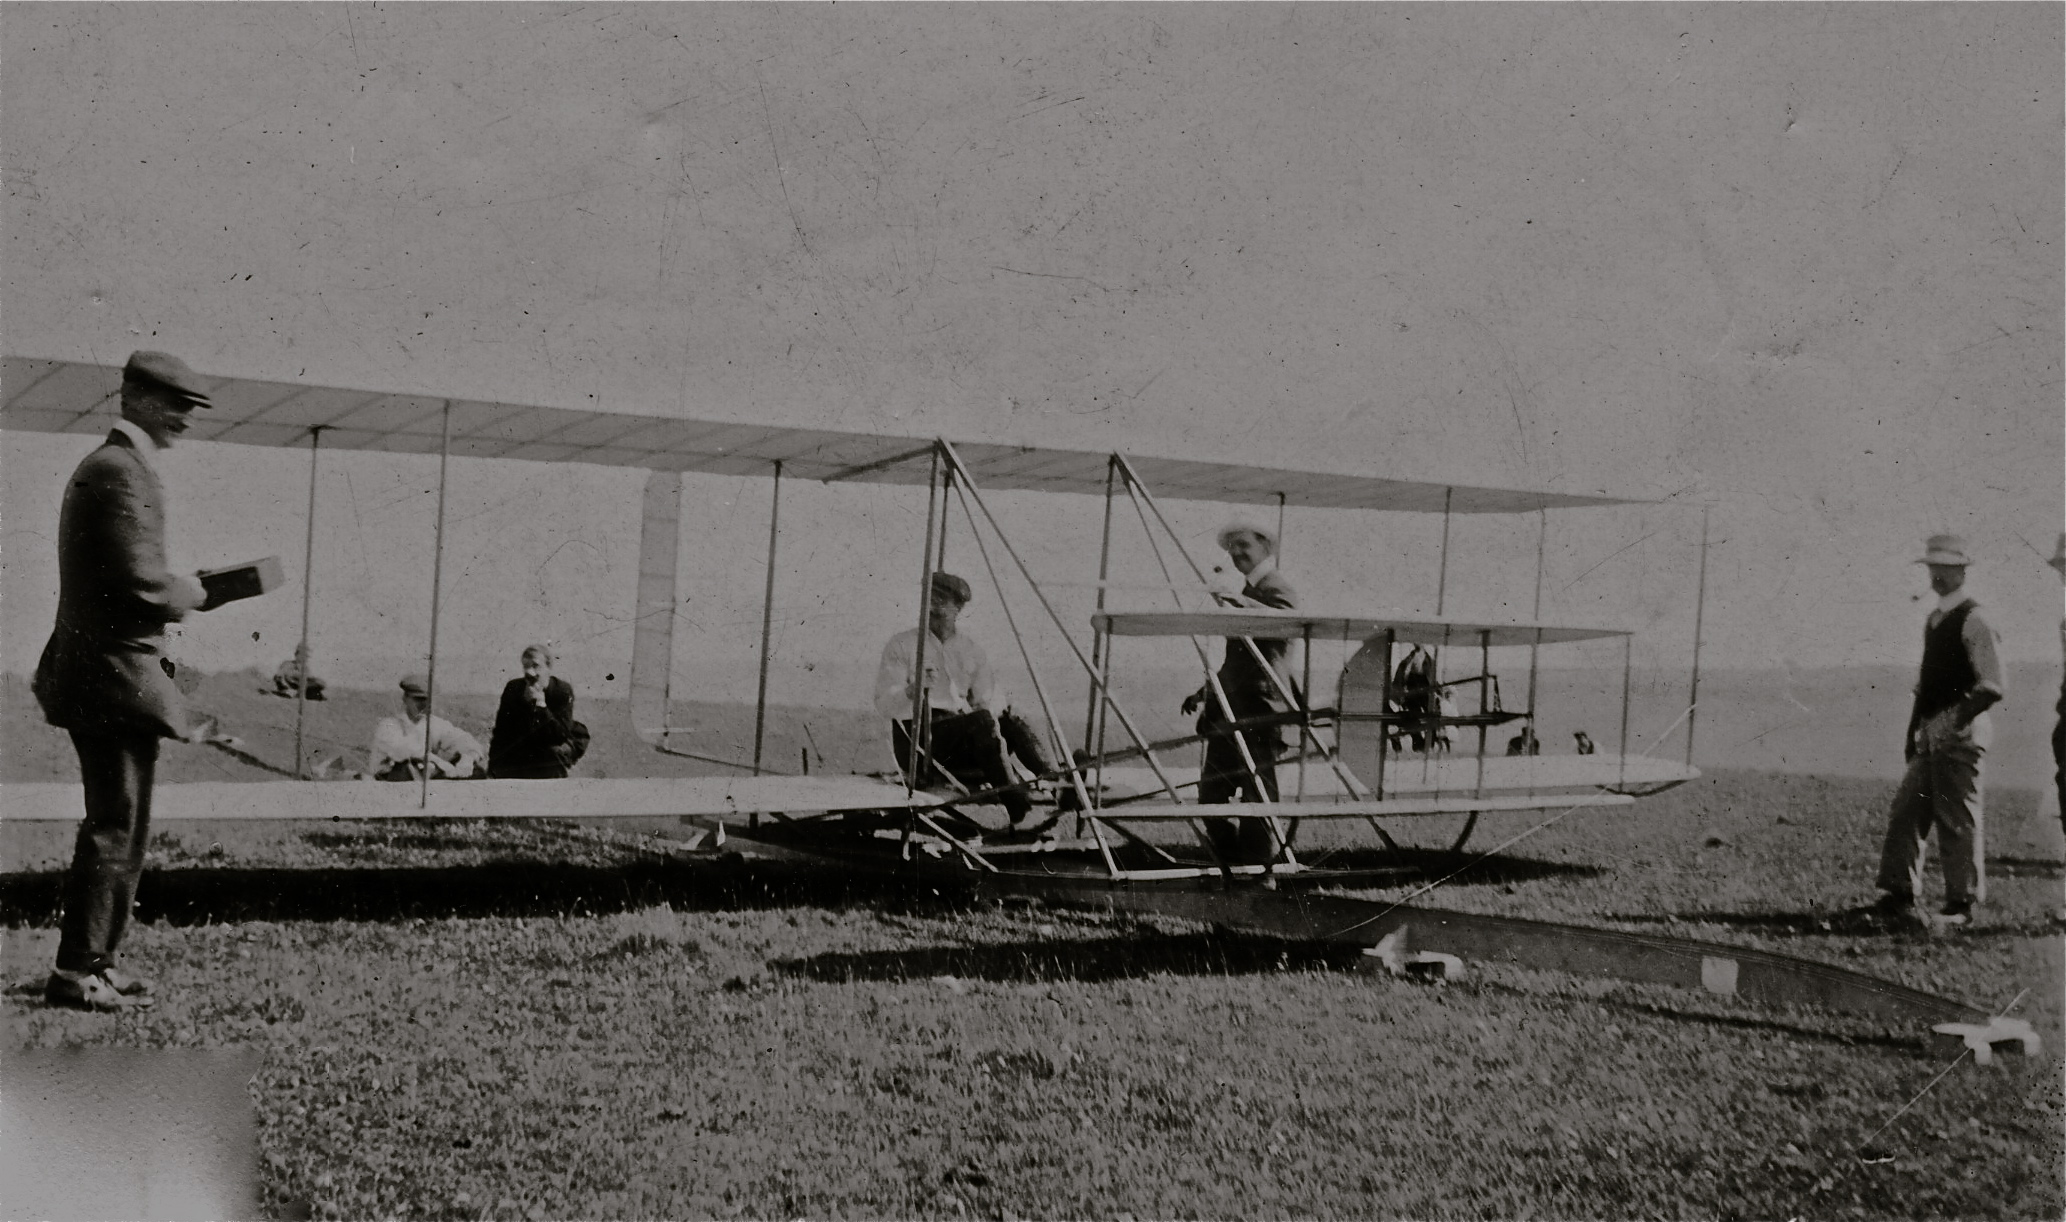 plane-at-willows-fg-1919